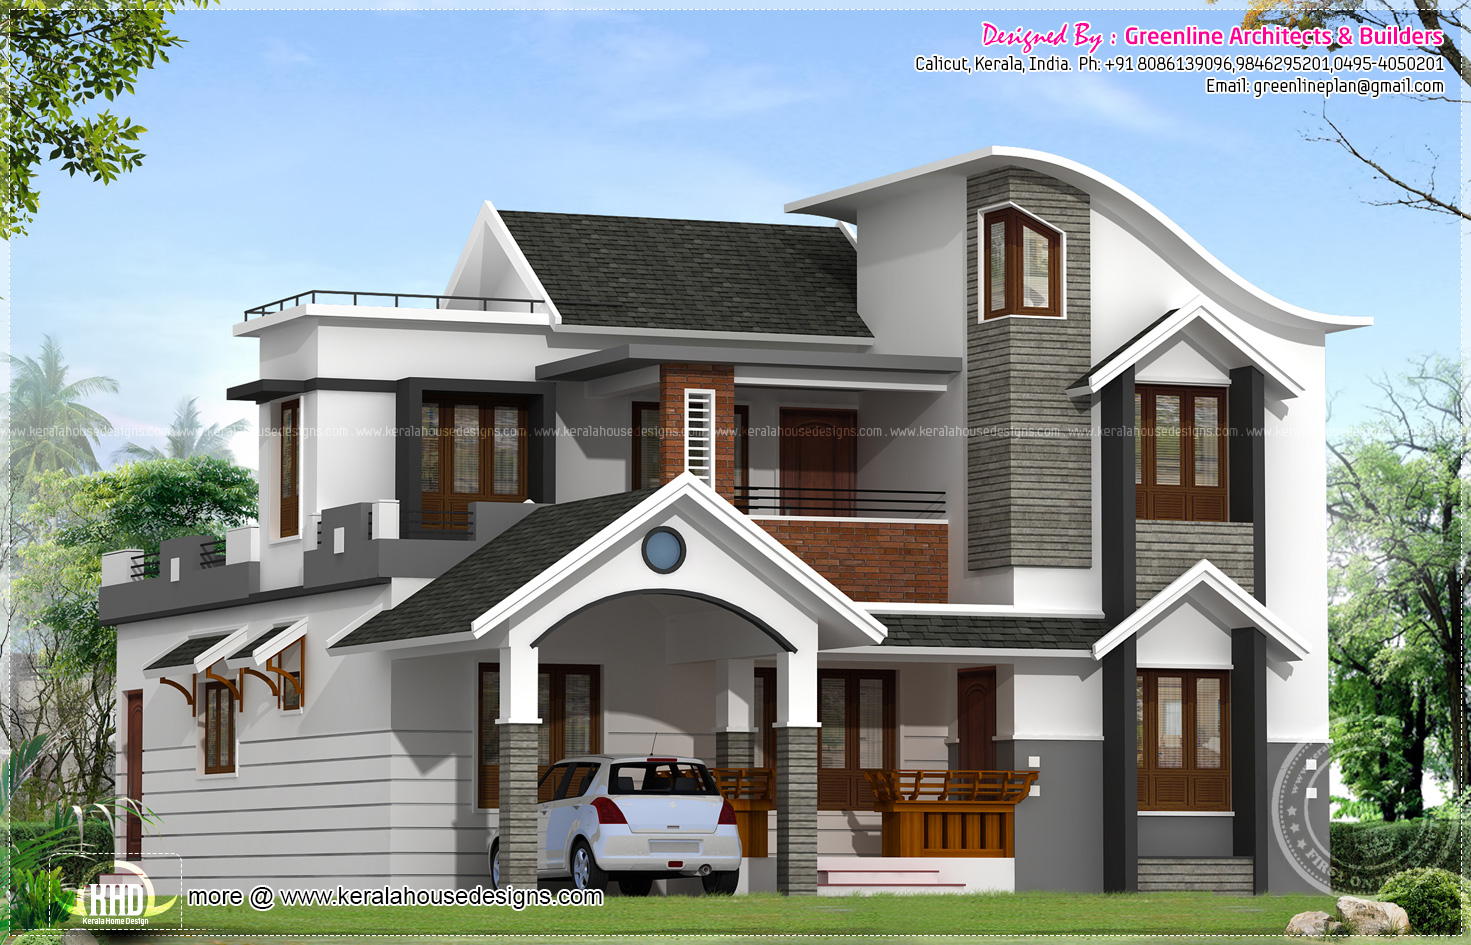 May 2013 kerala home design and floor plans for Architecture design for house in india